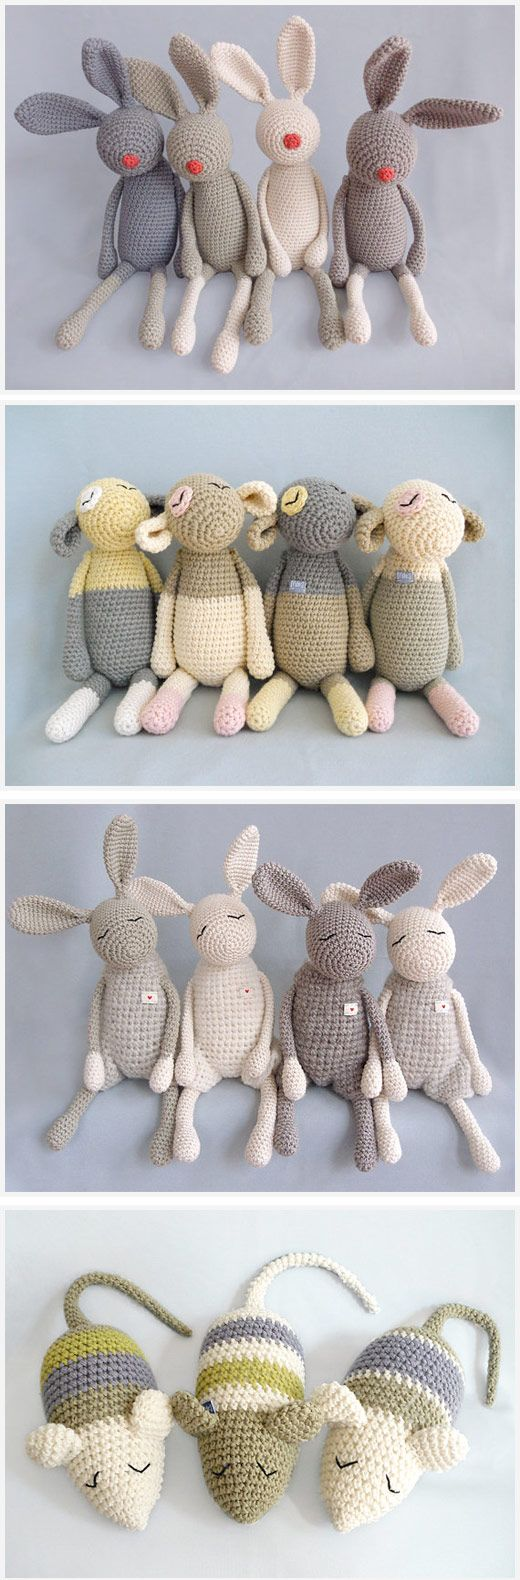 In honour of all things adorable and sweet, today I'd like to share a charming collection of crocheted creations from [i'de:] in Germany. Each of these gorgeous